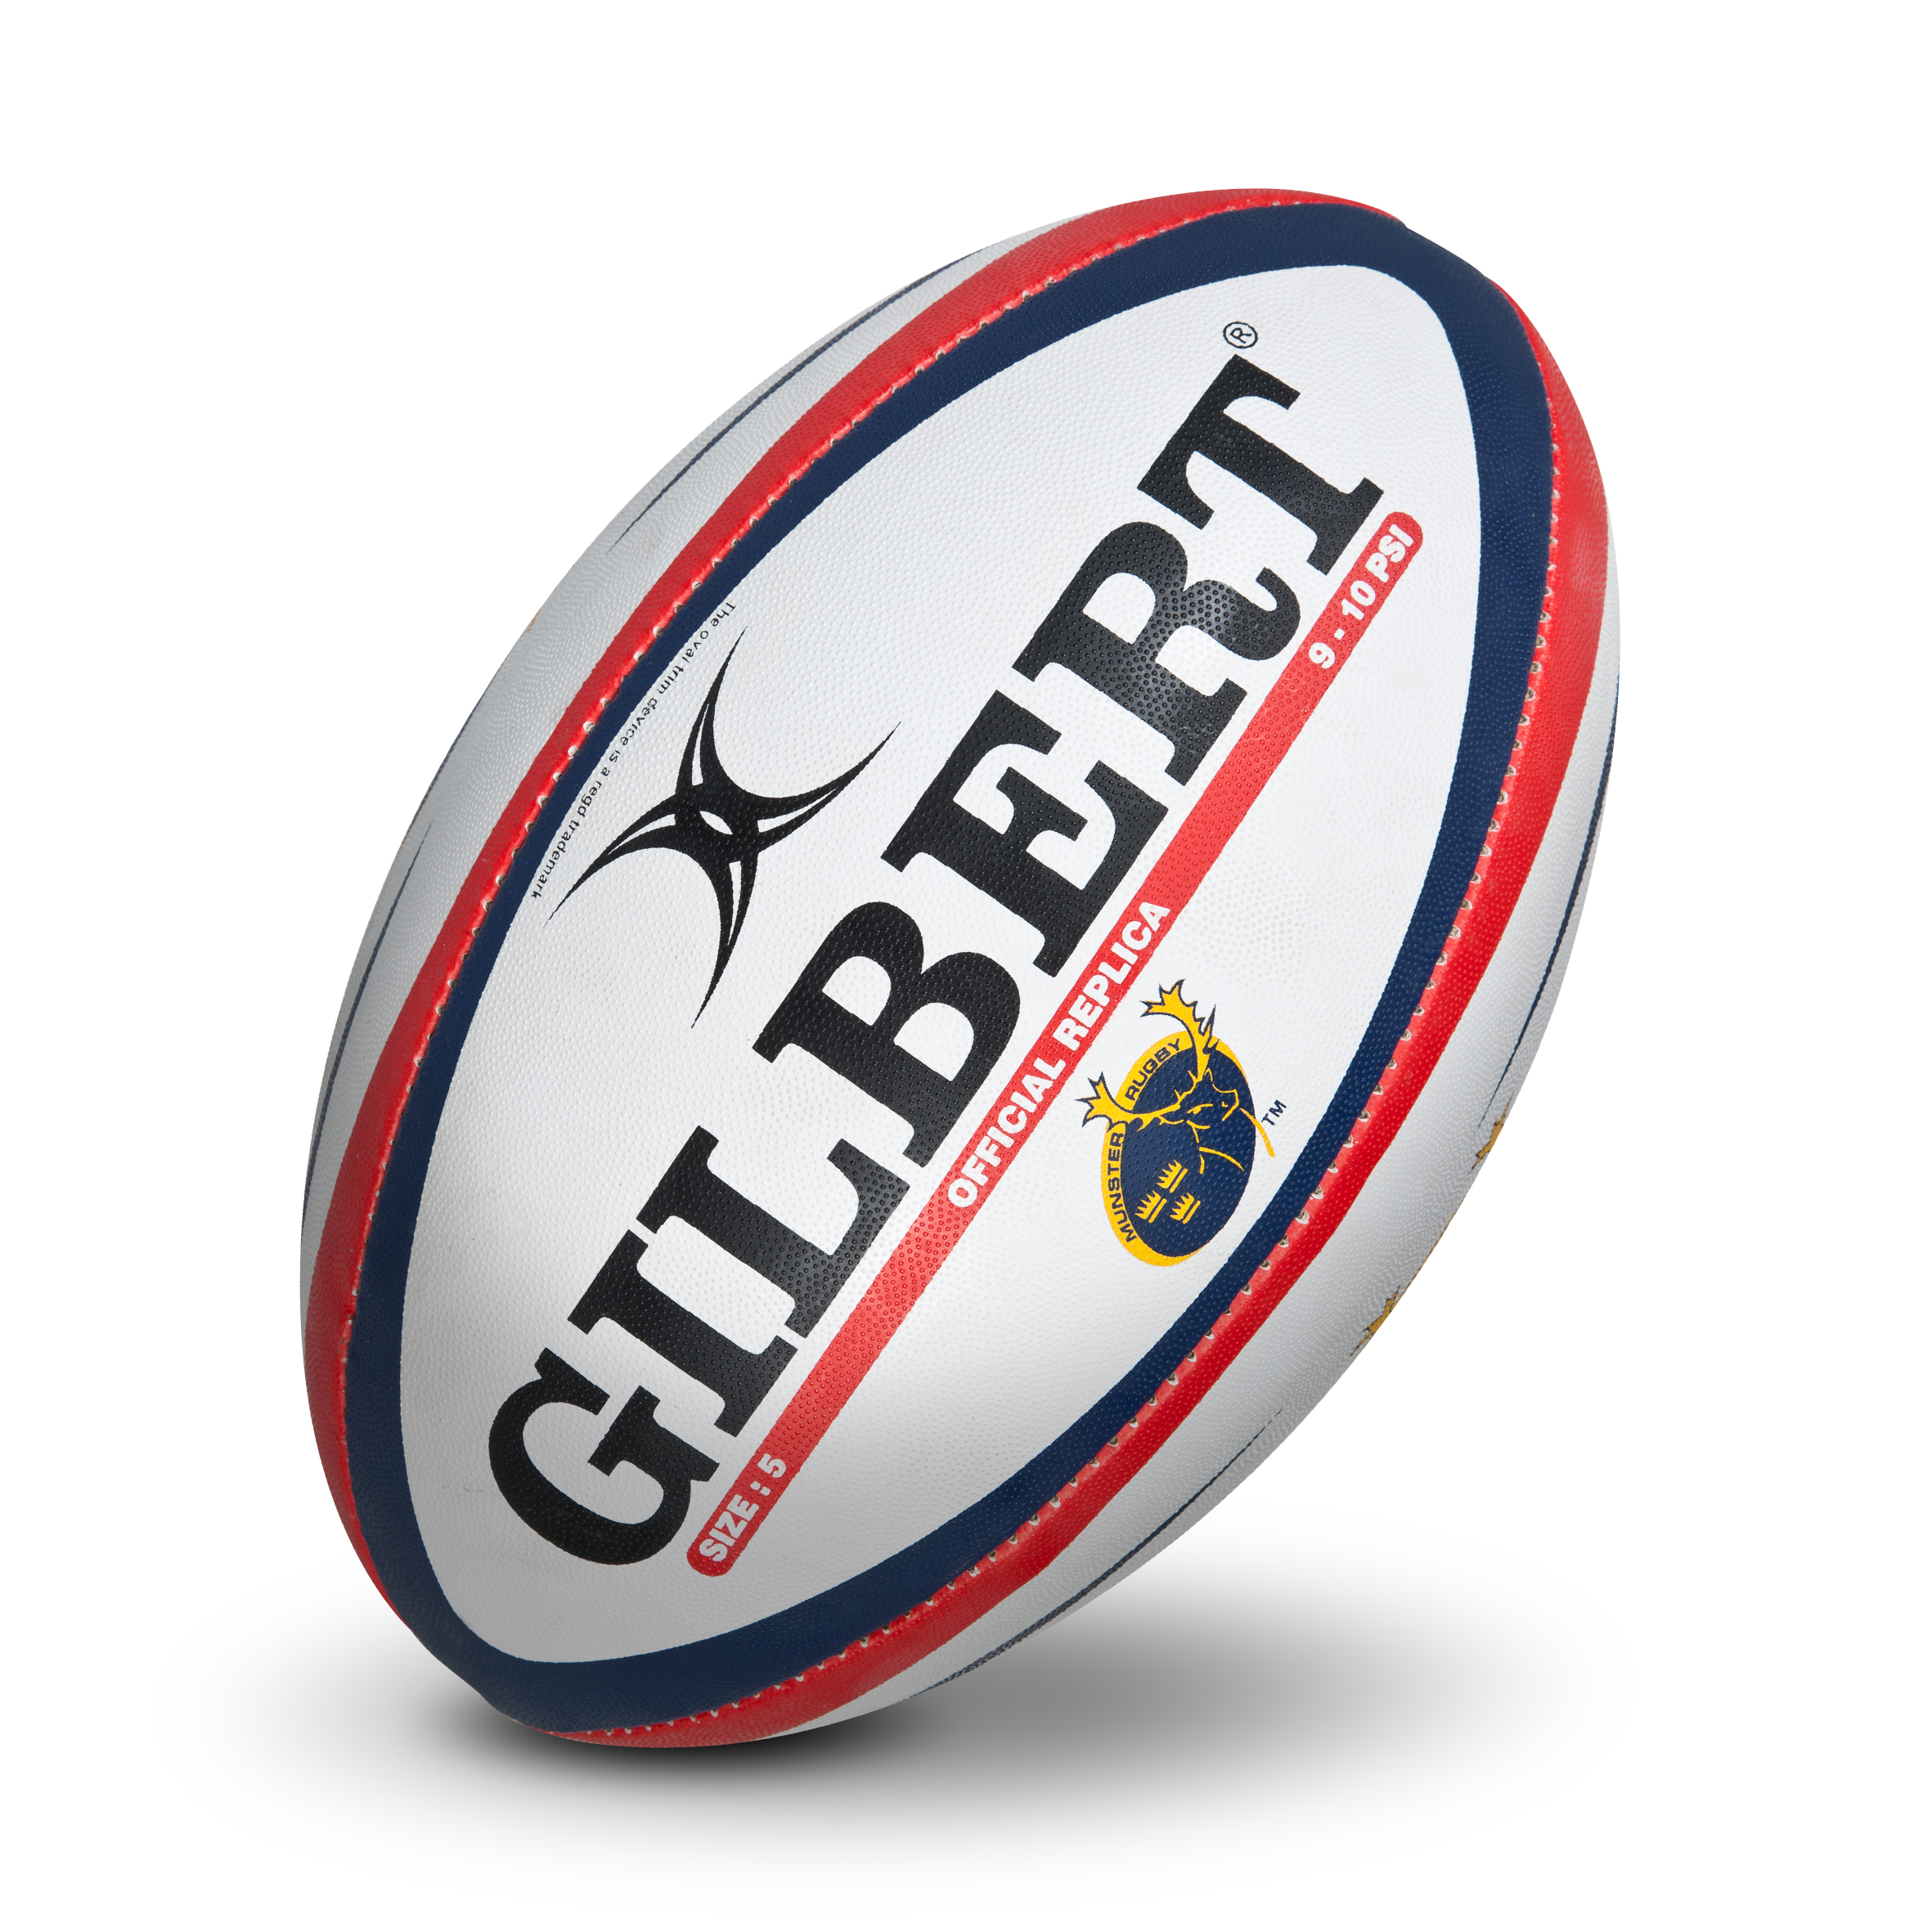 Gilbert Munster Replica Rugby Ball - Size 5 - White/Red